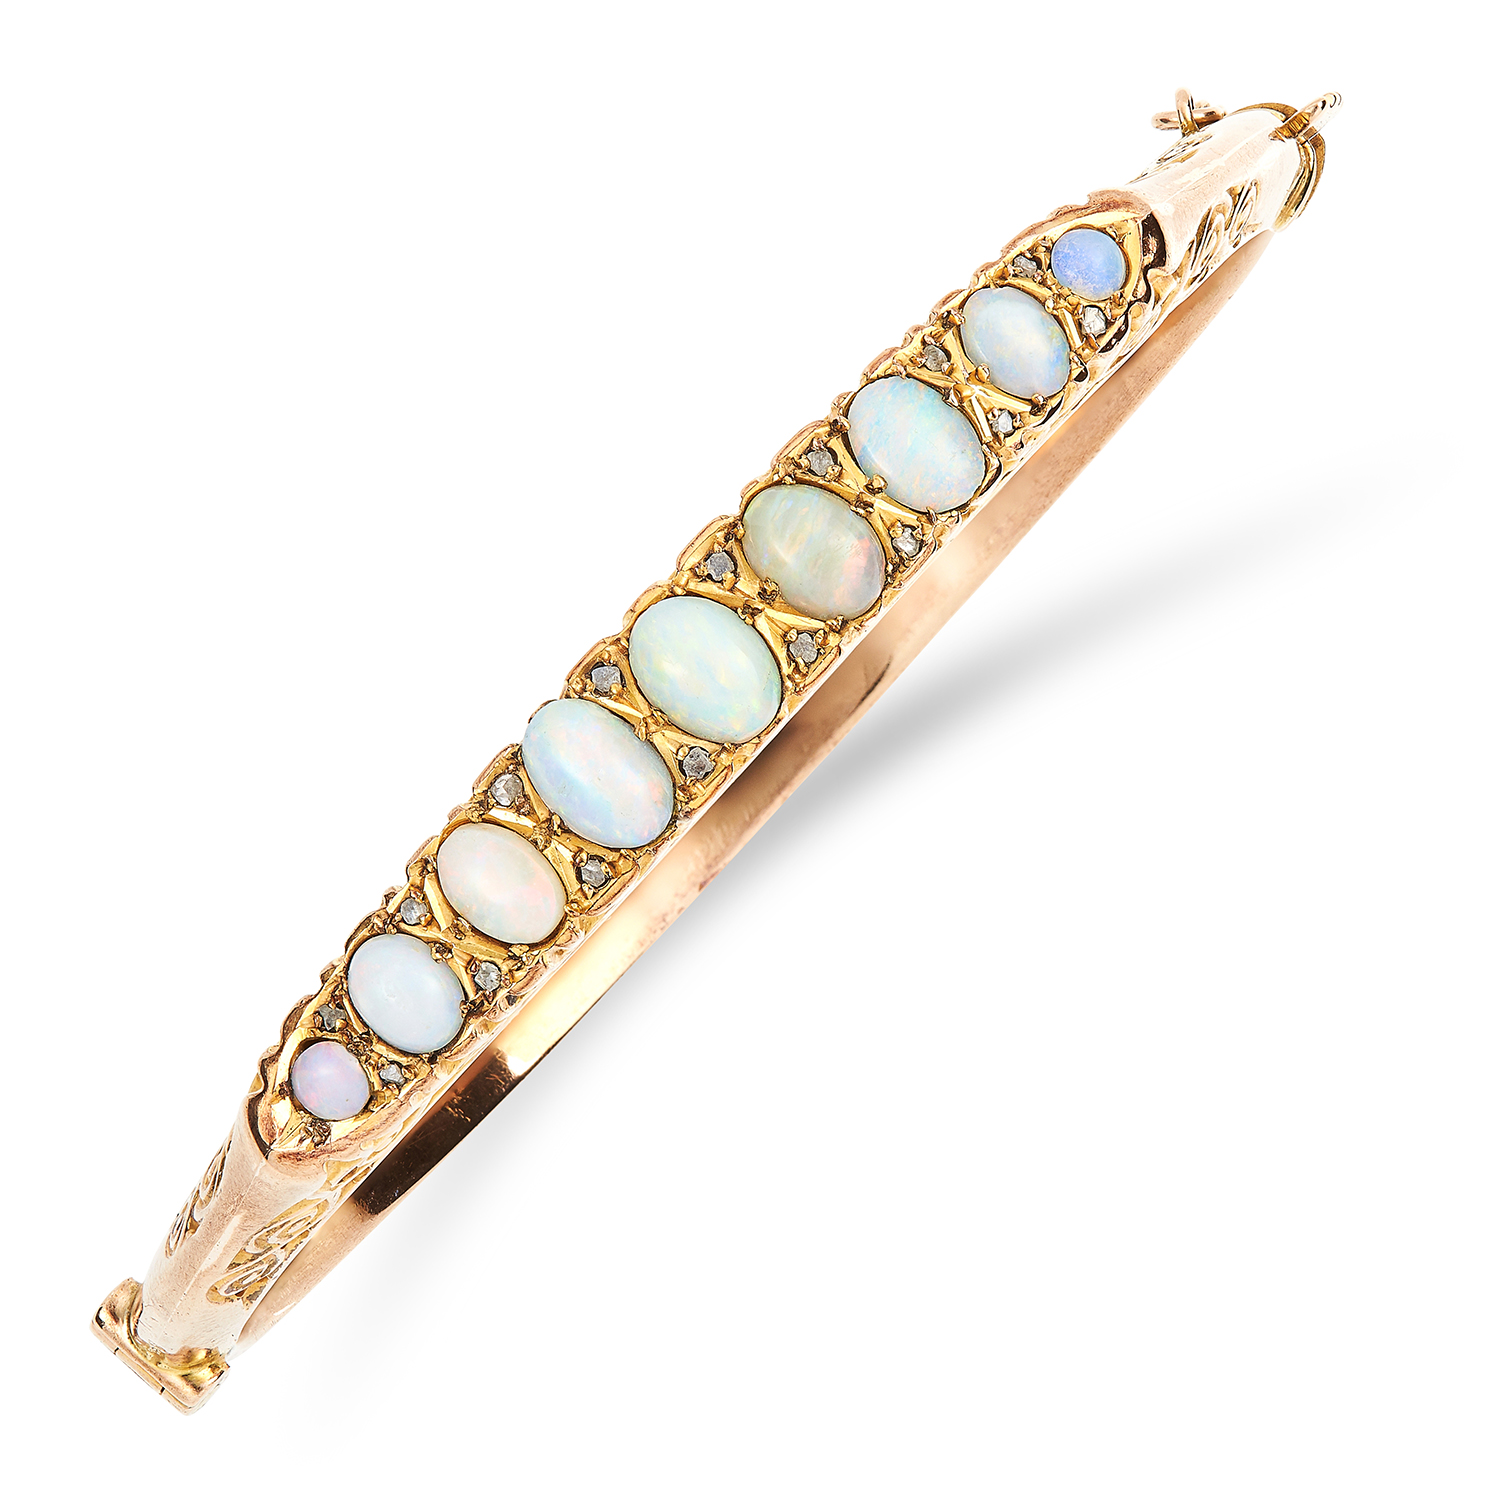 Los 21 - ANTIQUE VICTORIAN OPAL AND DIAMOND BANGLE set with cabochon opals and diamond sparks, 6cm inner